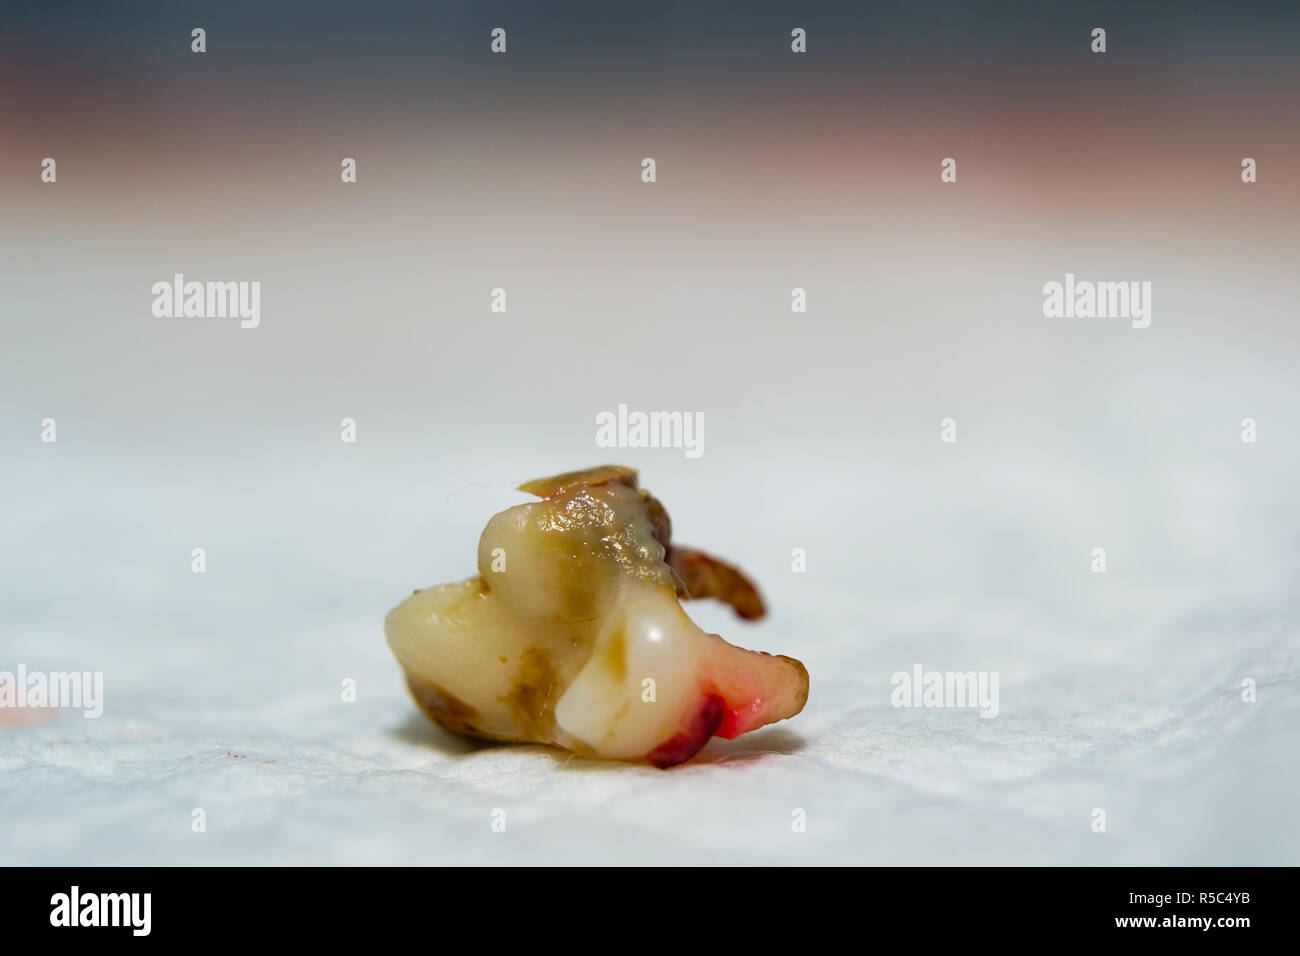 Dog Tooth Extracted Pulp Infection Tartar Stock Photo Alamy